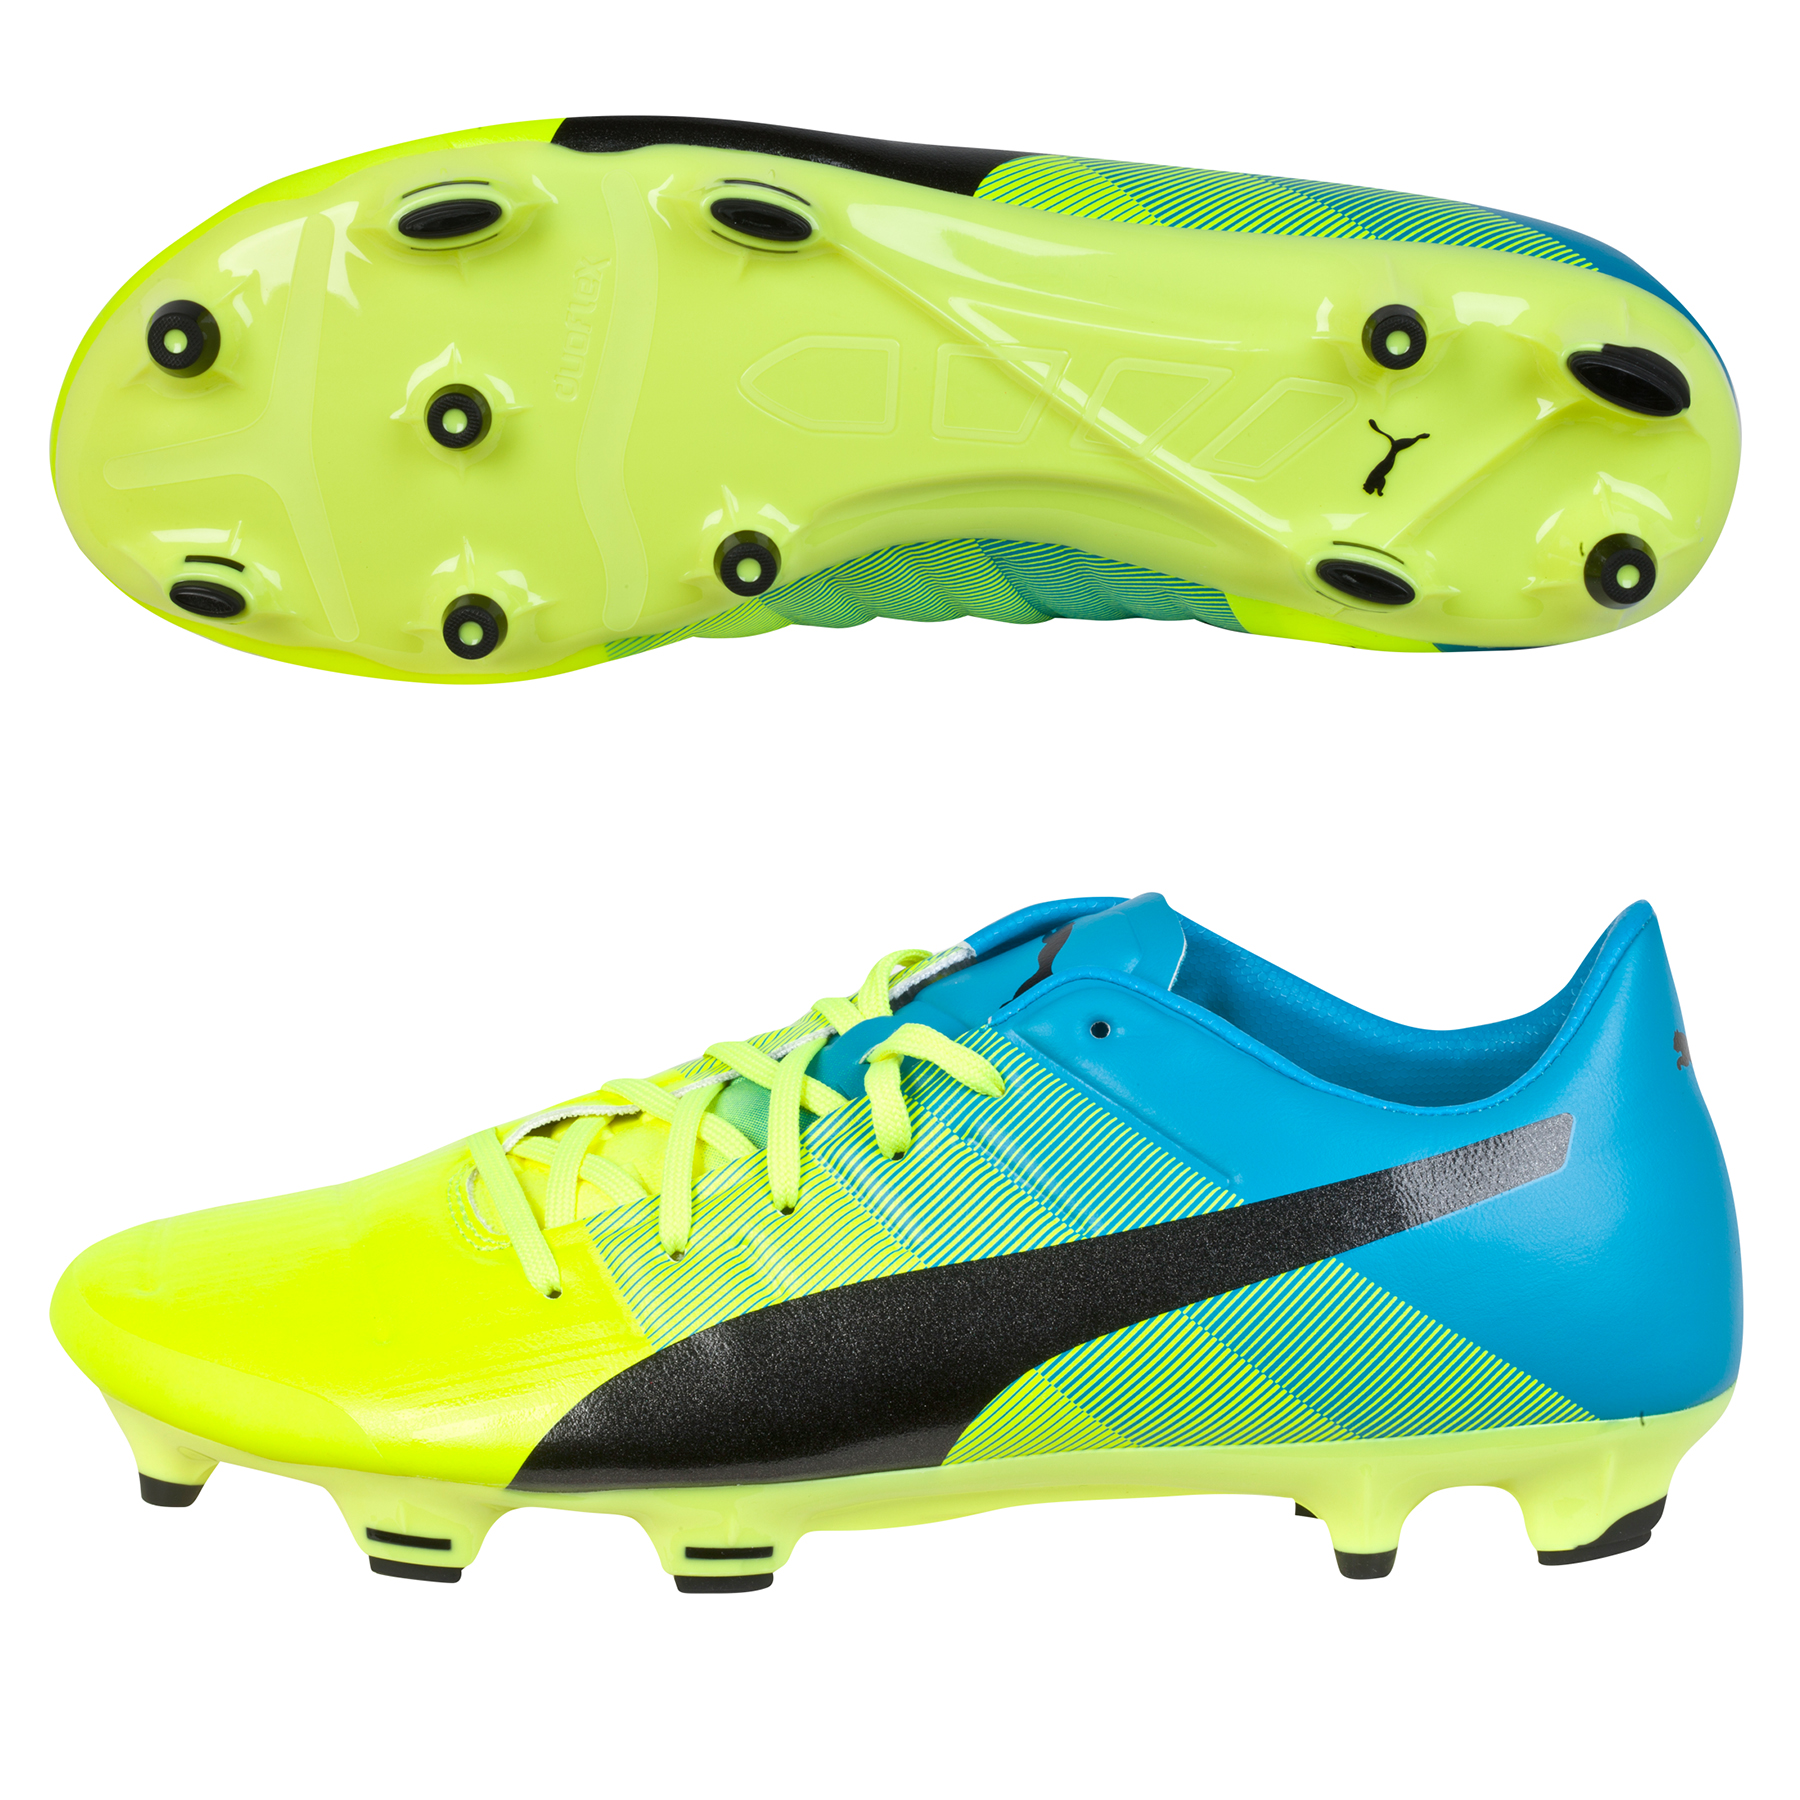 Puma evoPOWER 2.3 FG Yellow